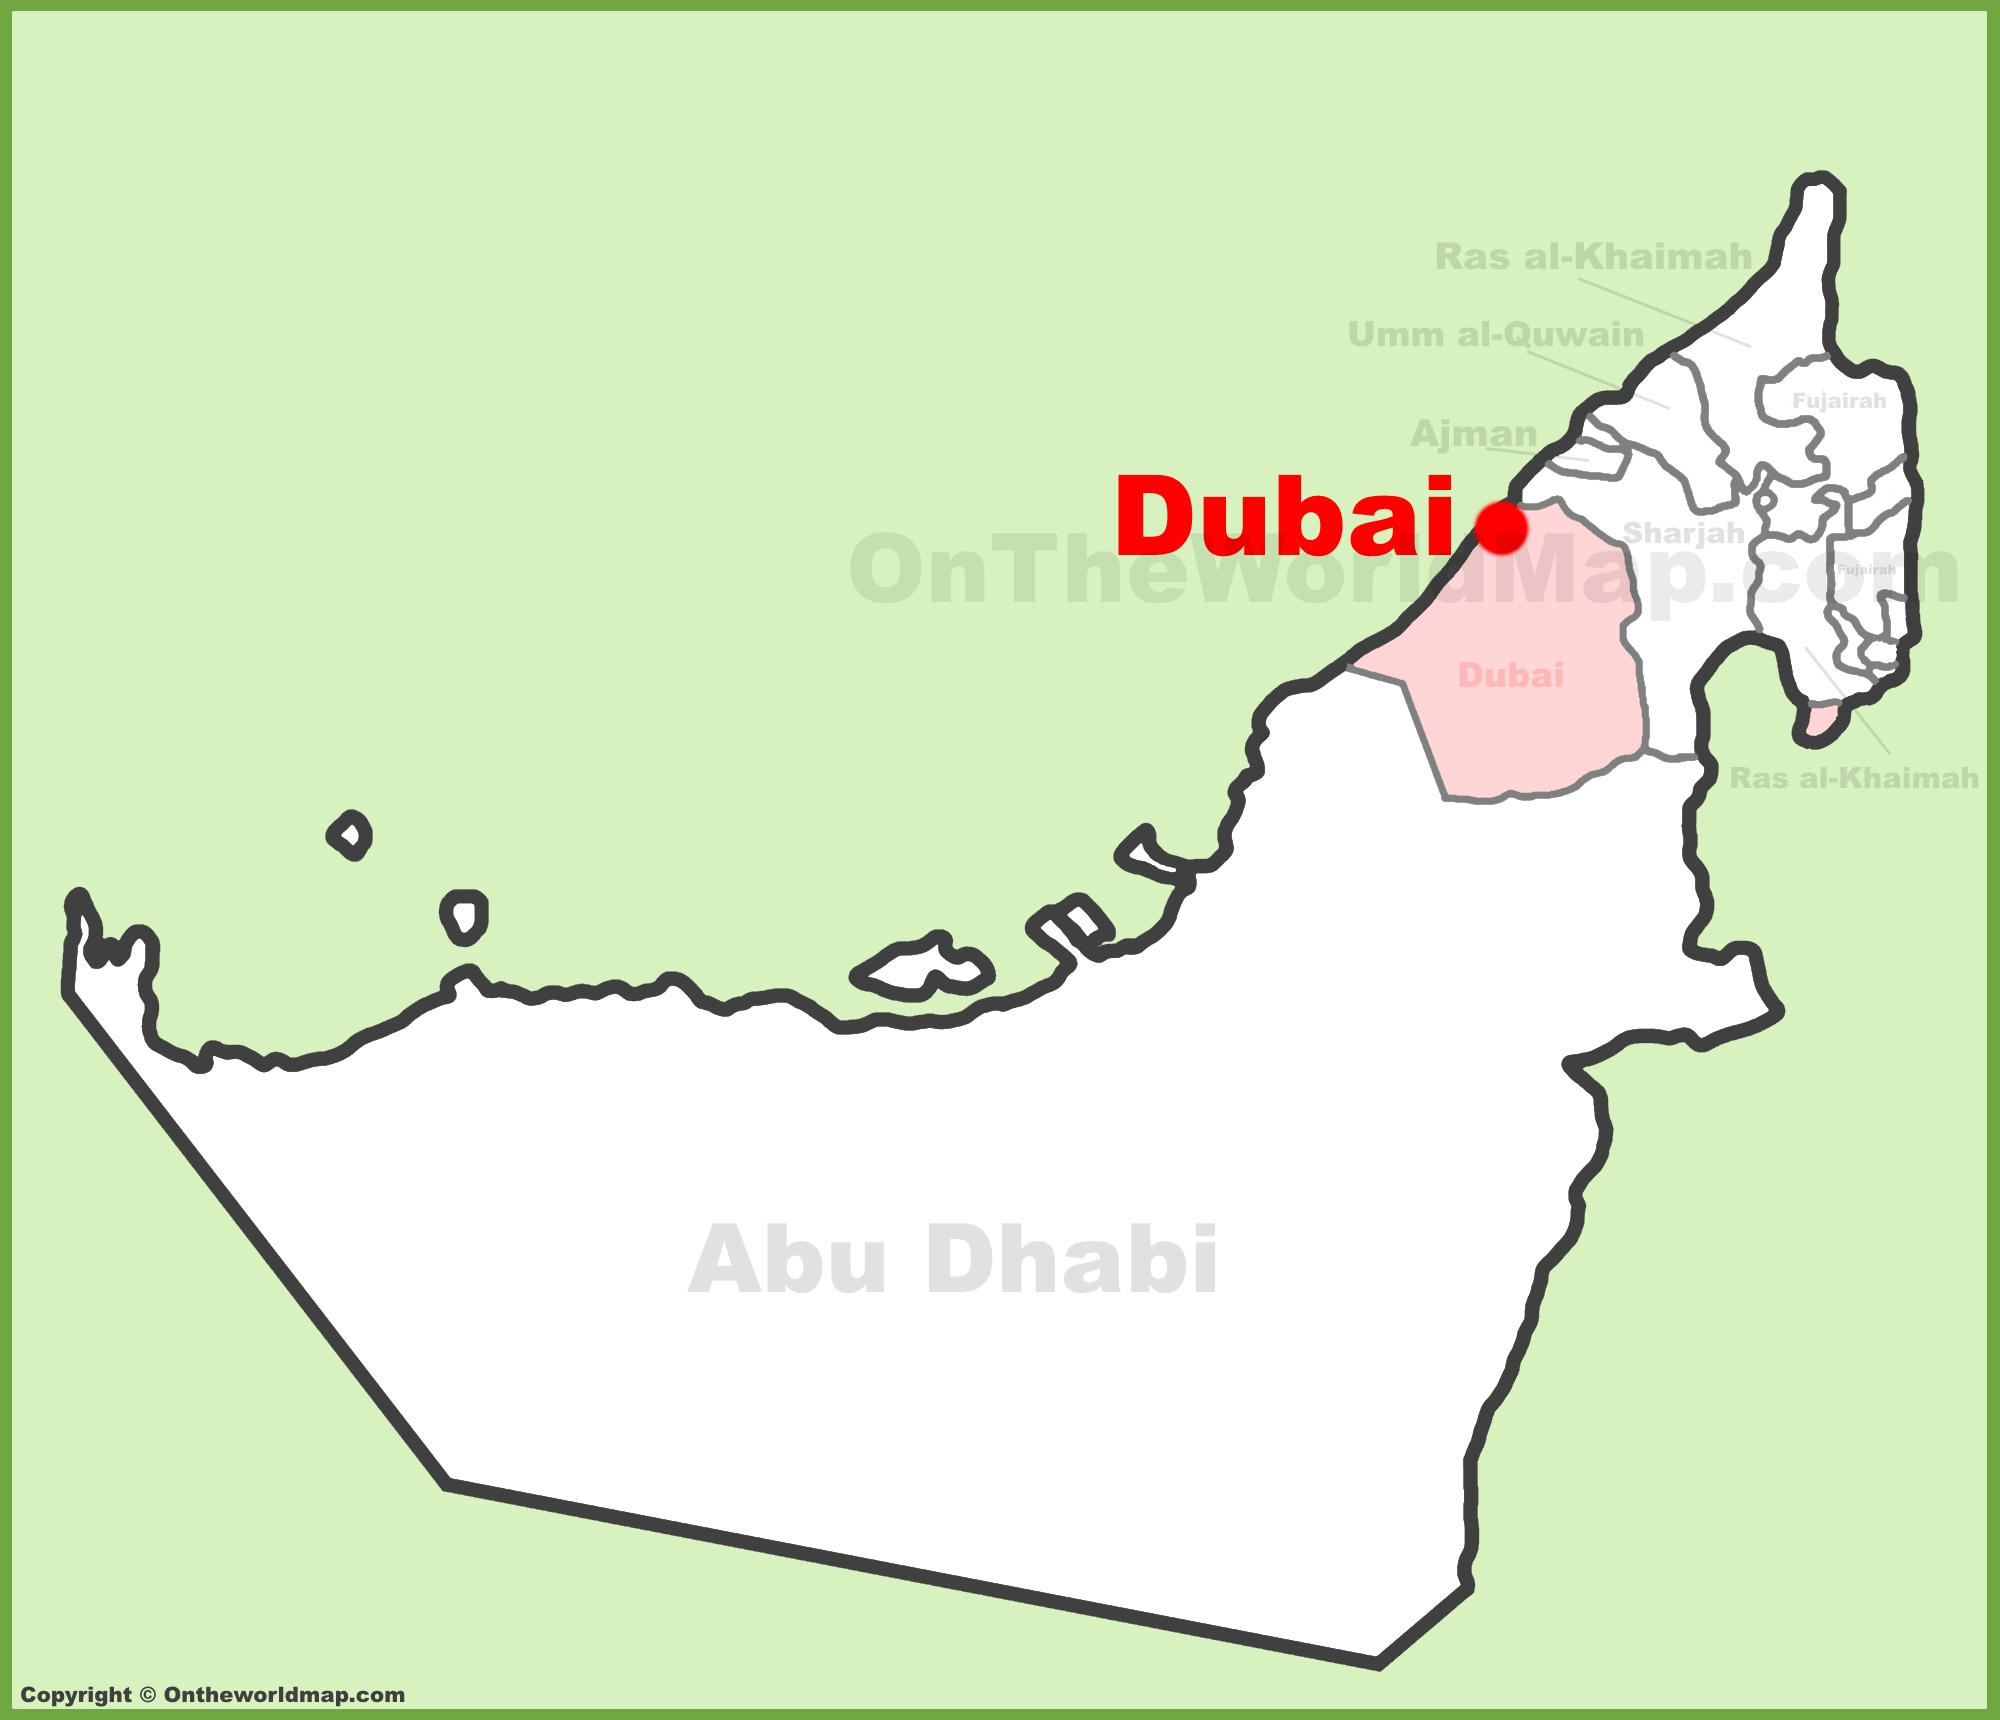 Dubai location on the UAE United Arab Emirates Map